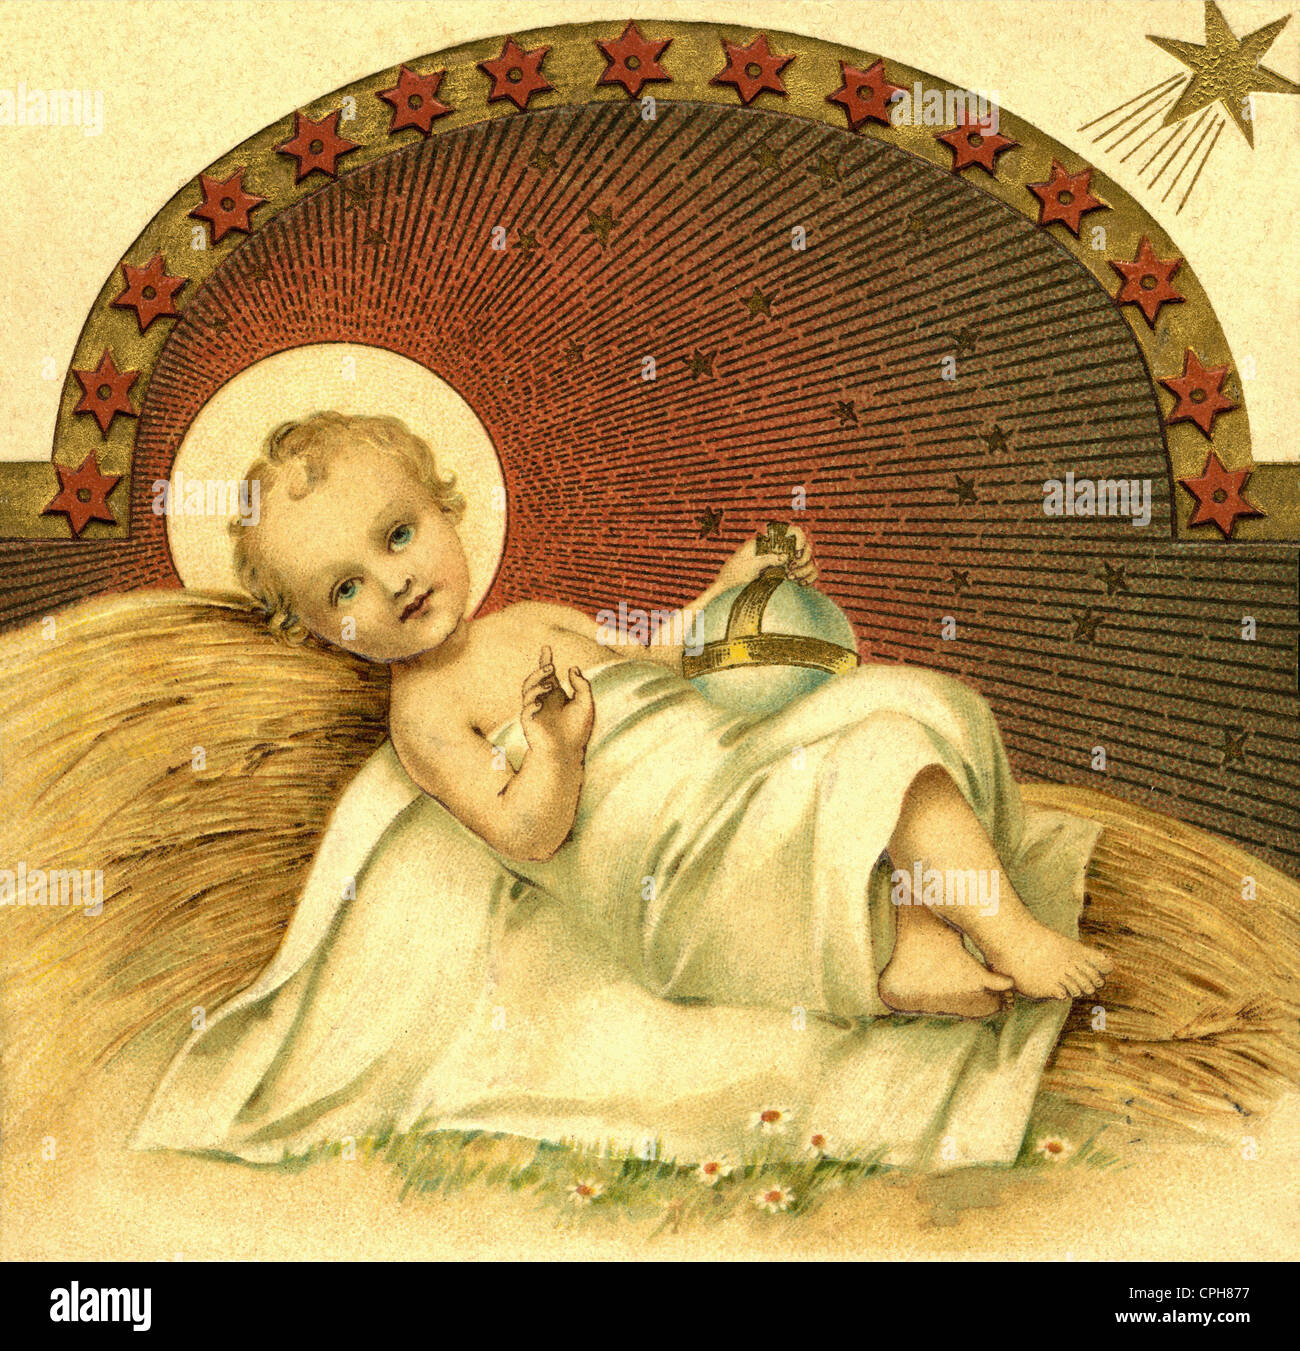 Christmas, The Nativity, the infant Jesus lying on straw, religious portrayal, Netherlands, 1910, Additional-Rights - Stock Image